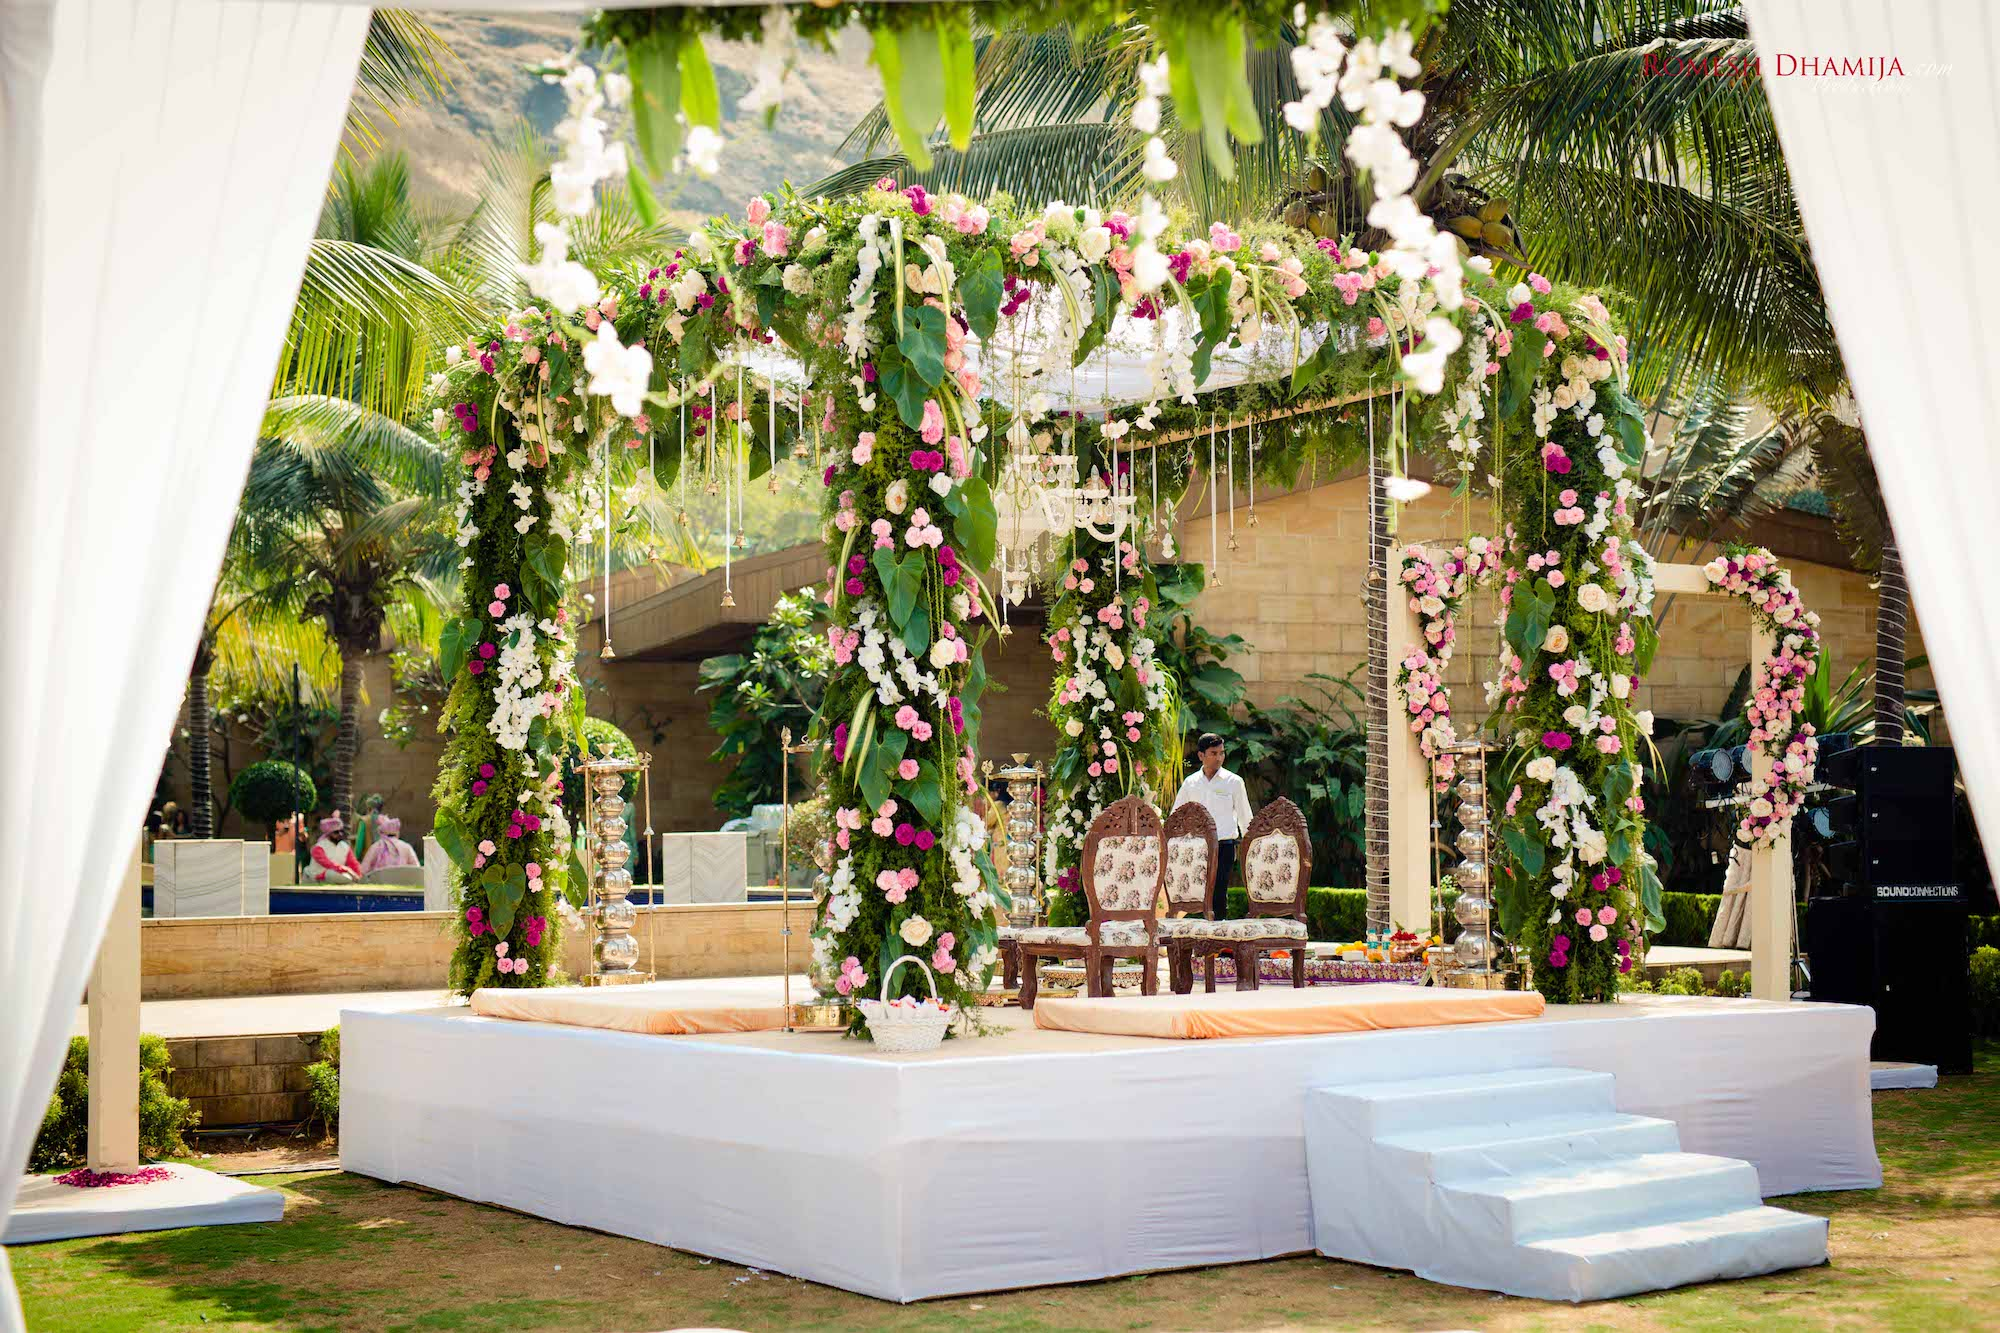 Outdoor Mandap decoration with Foliage and flowers of Violet, Pastel Pink & White colour